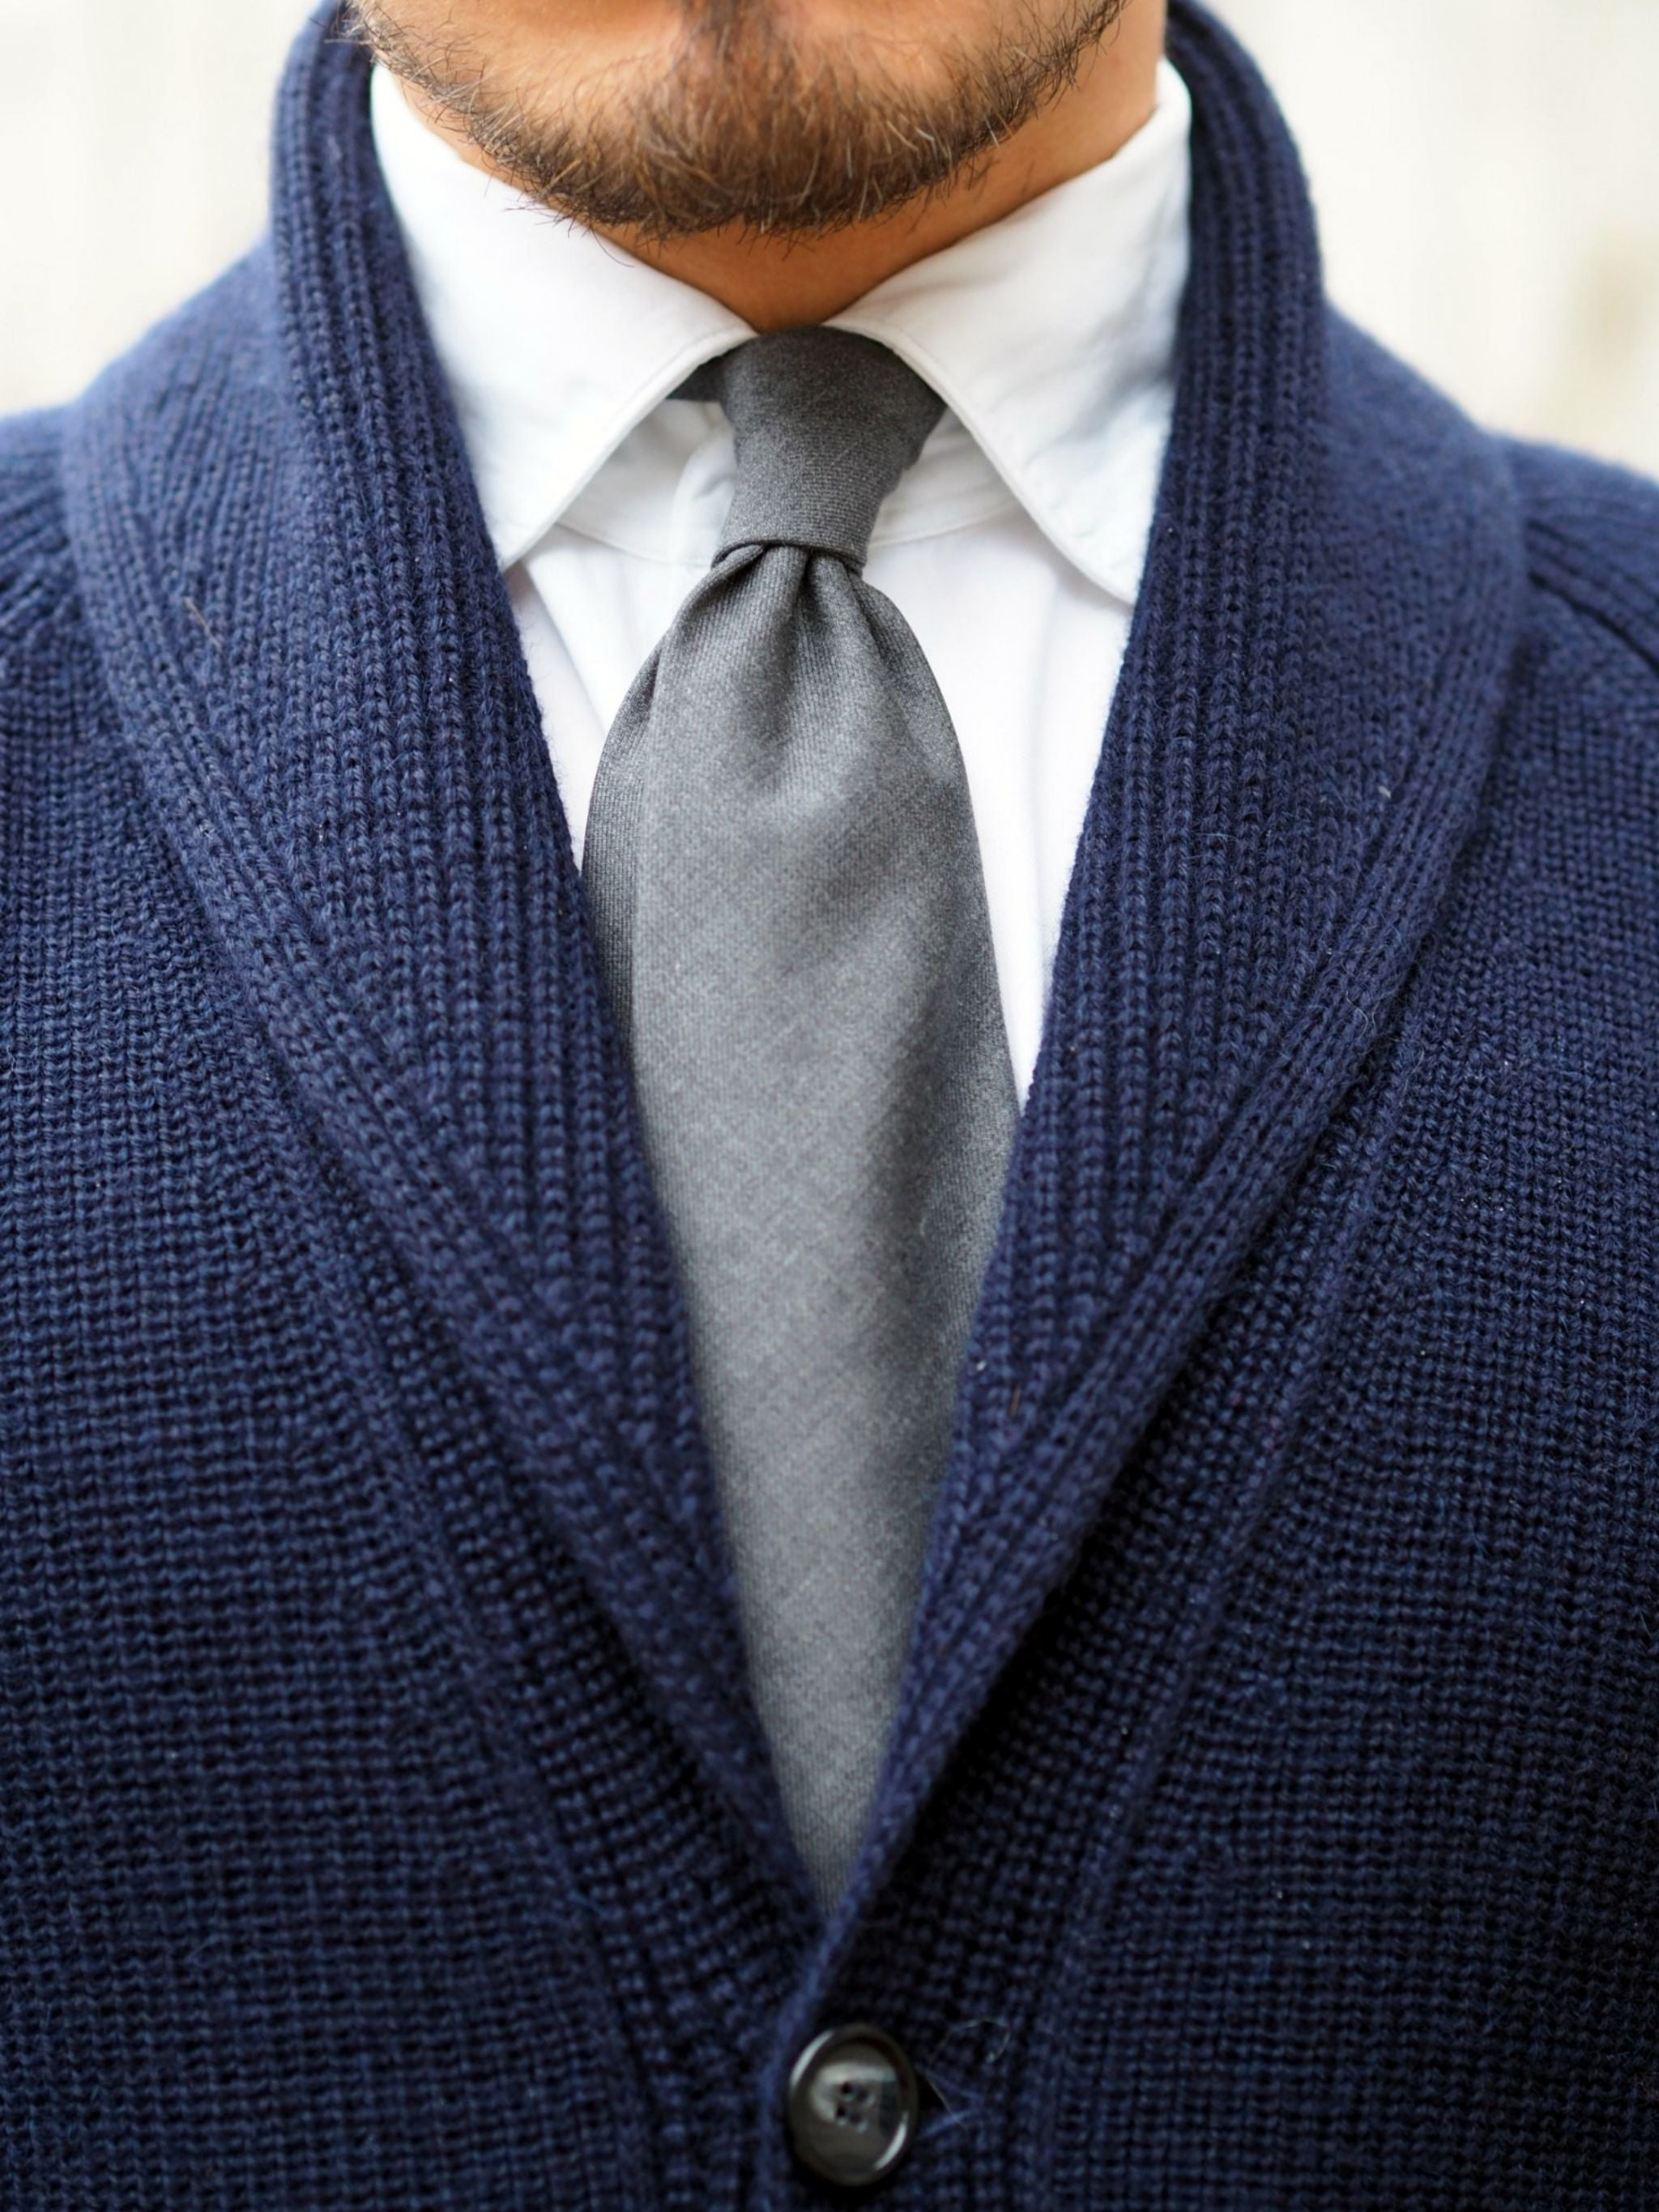 Alpa-blue-shawl-collar-cardigan-with-a-gray-wool-tie-details